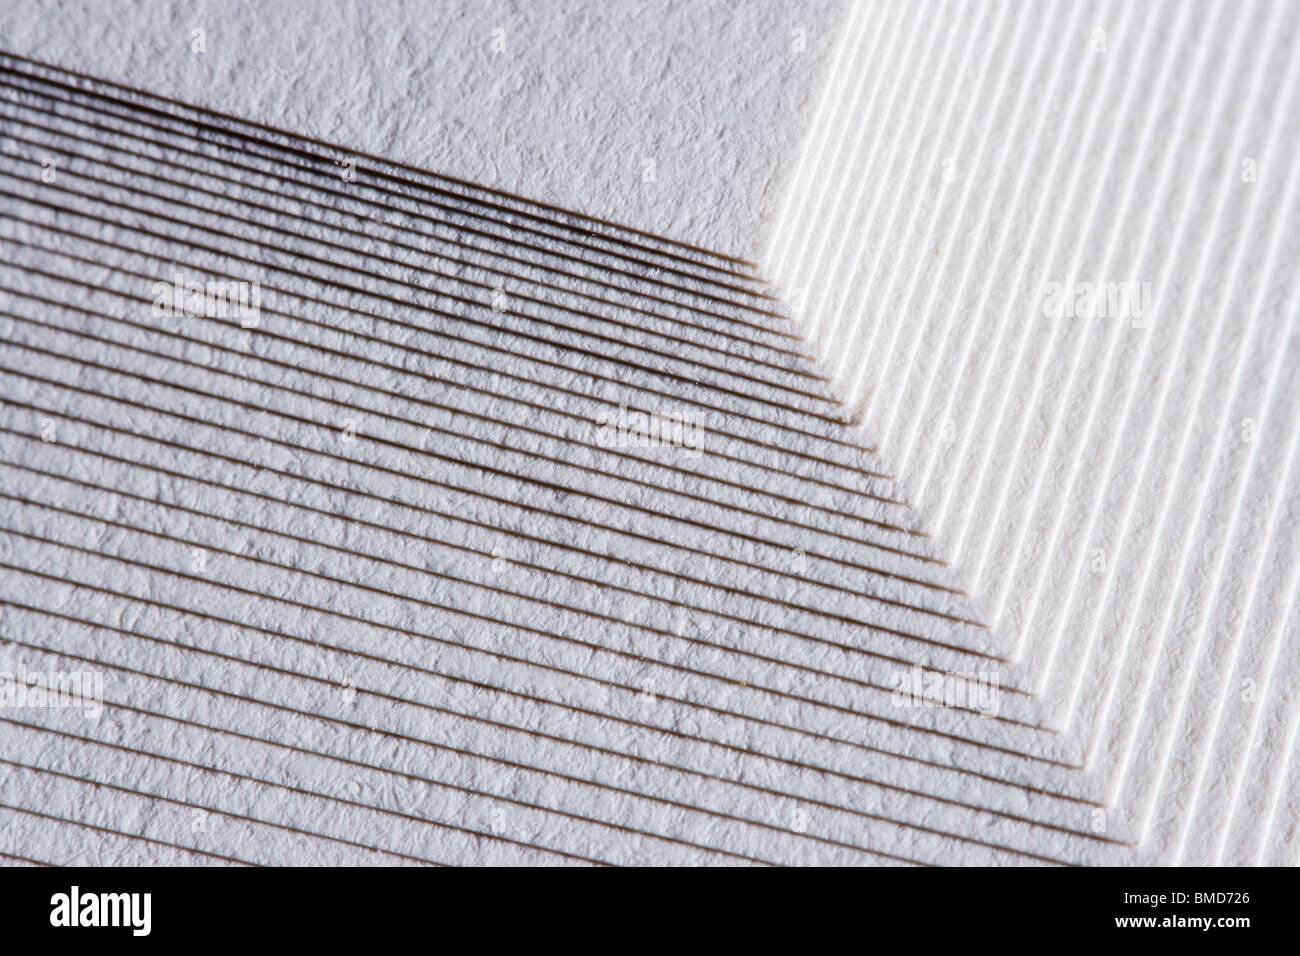 Pile de papier, Close up Photo Stock